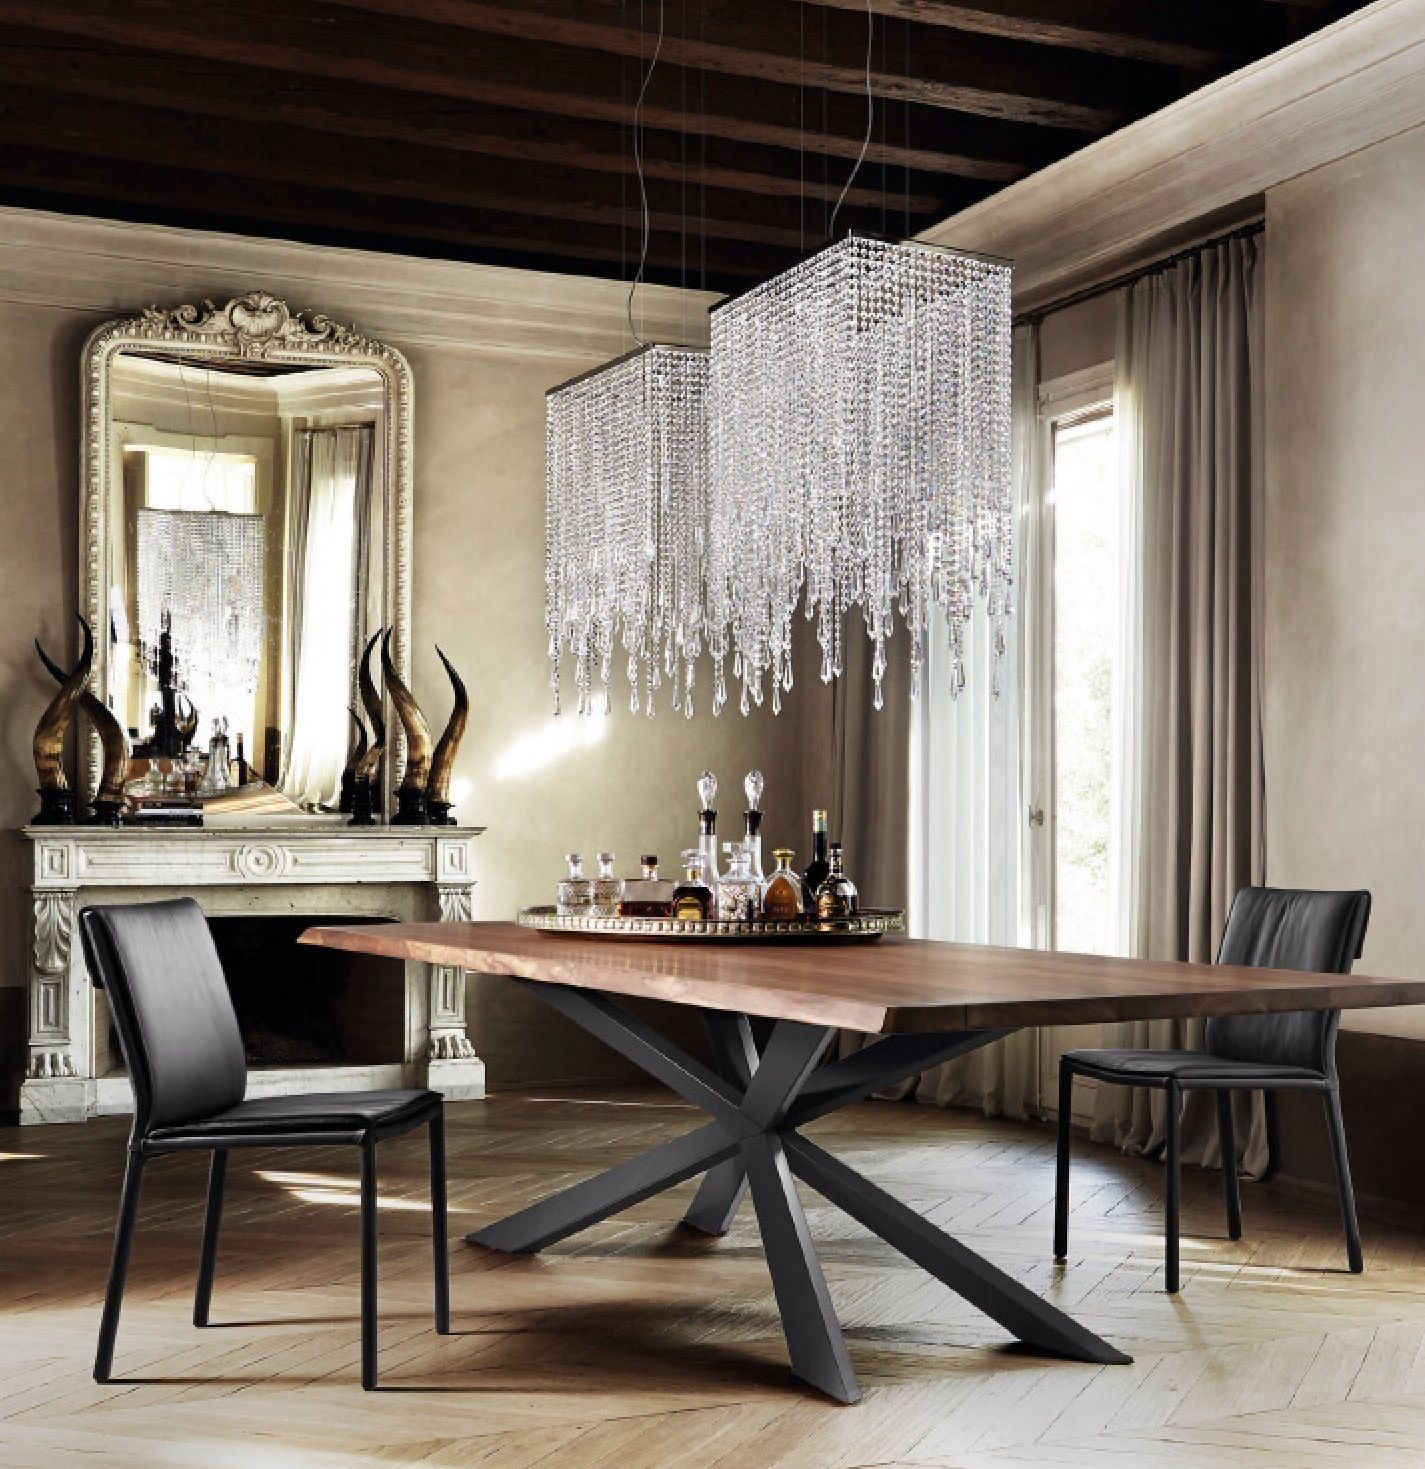 modern dining table design by Cattelan Italia aesthetic sculptural table Spider Wood 3 Dream Dining Room 3 Pinterest